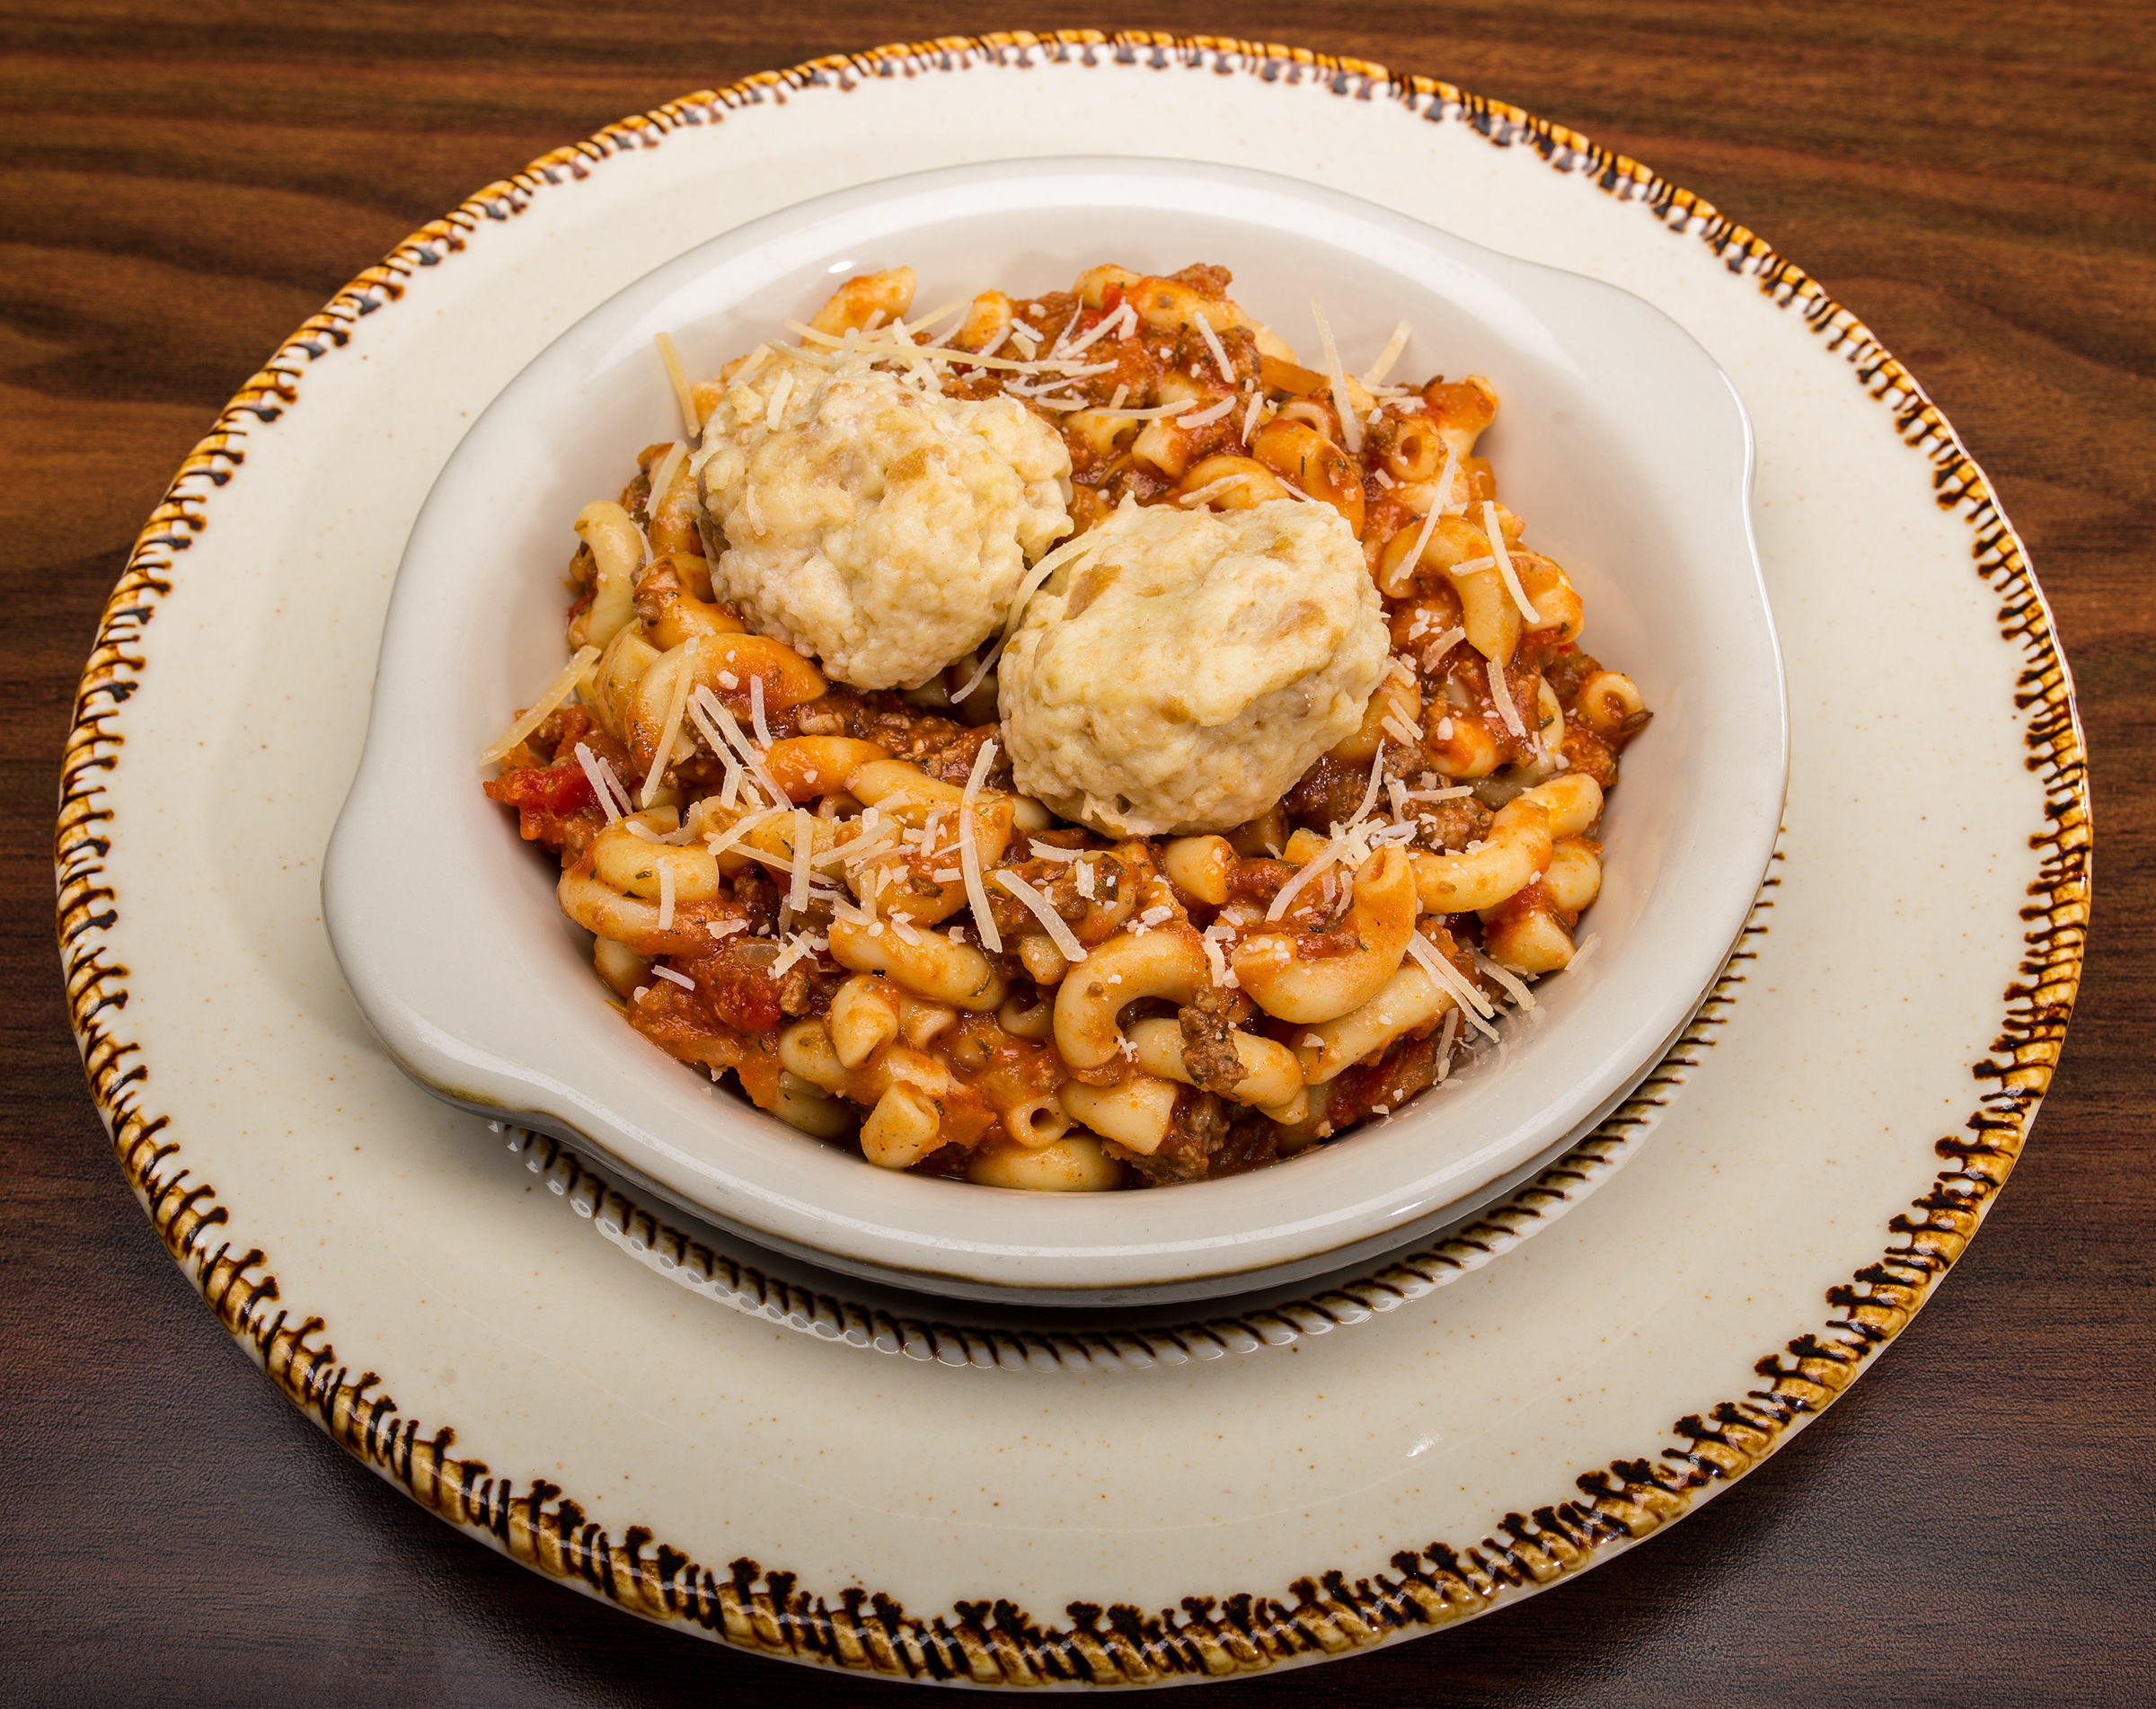 Goulash with dumplings 2-145297 w